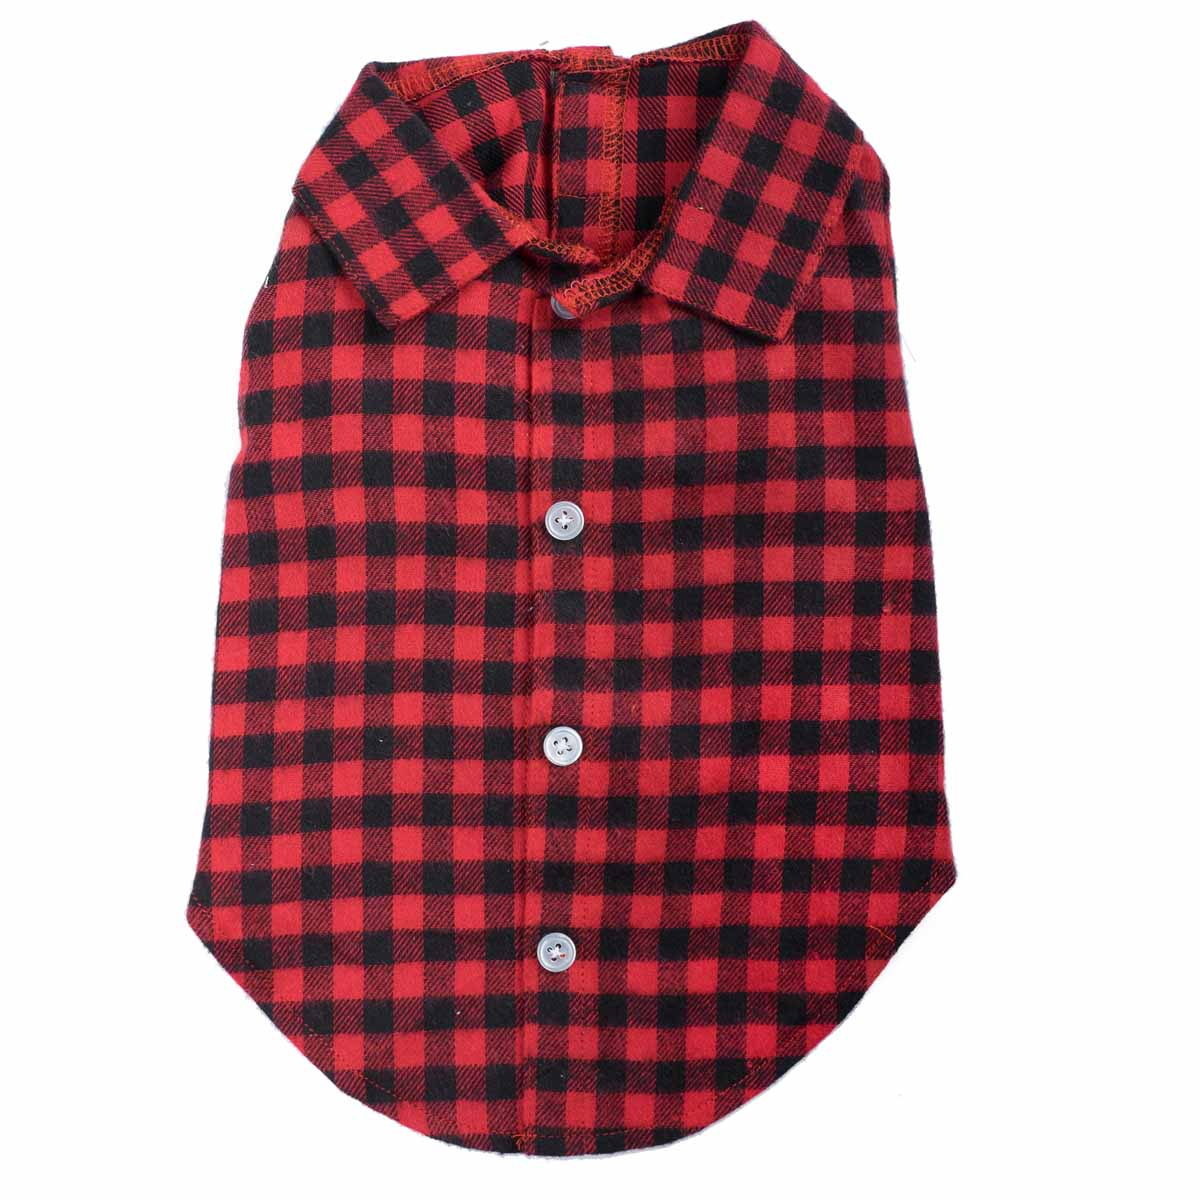 Worthy Dog Buffalo Plaid Dog Shirt Baxterboo